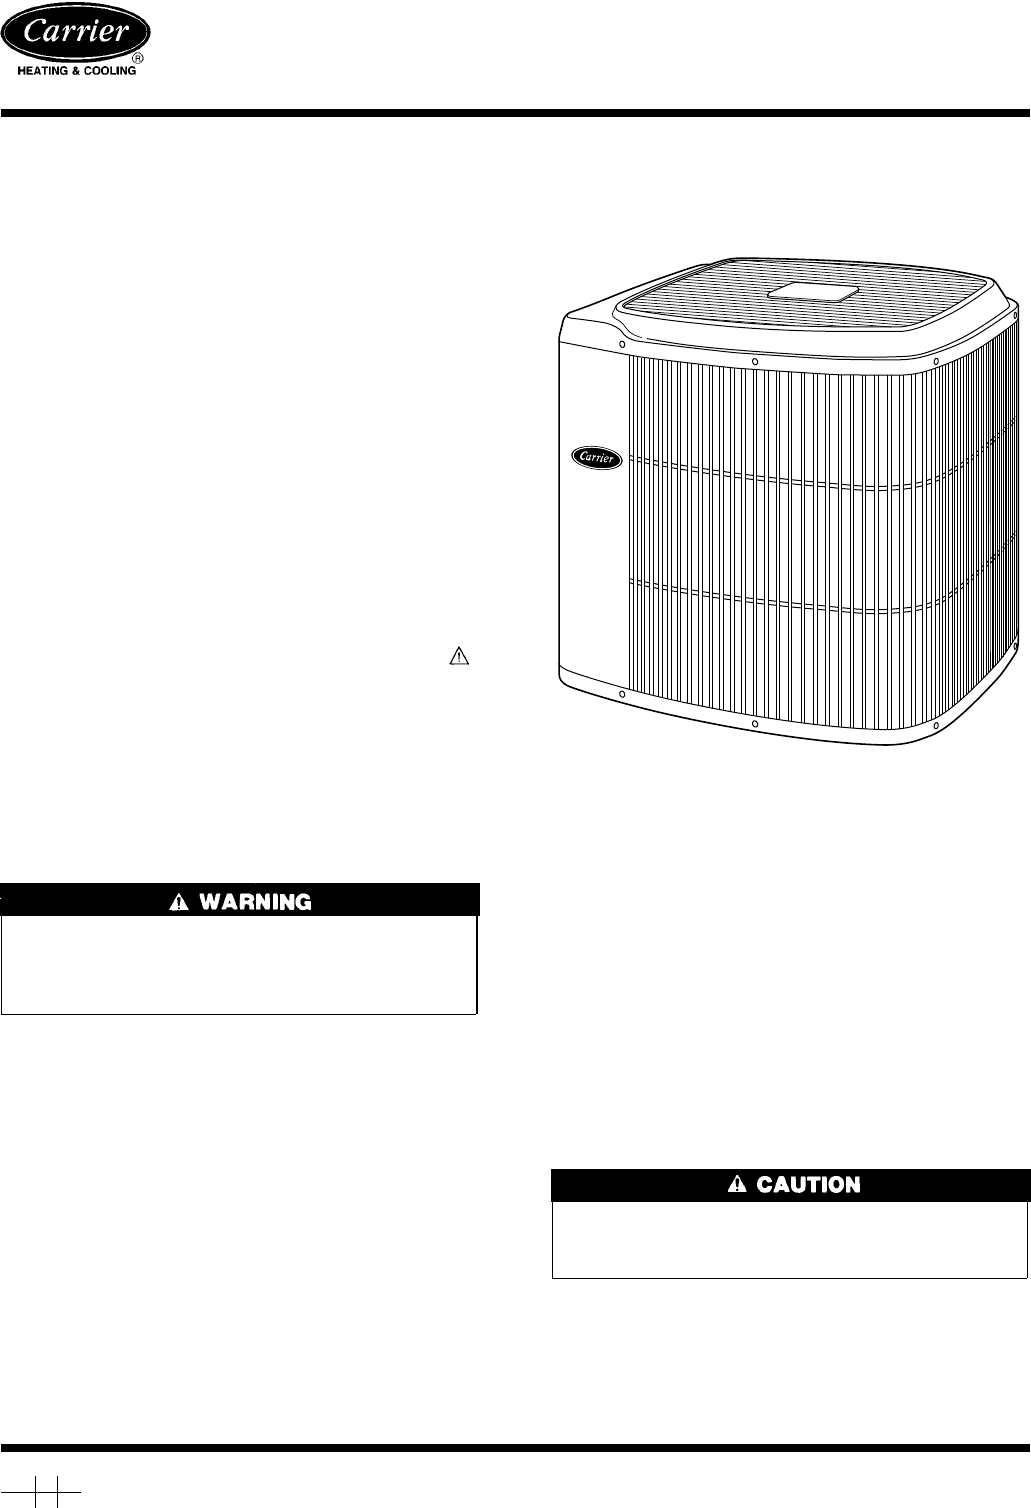 #666666 Carrier Air Conditioner 38TRA User Guide ManualsOnline.com Most Effective 7985 Air Conditioner Installation Safety pictures with 1031x1508 px on helpvideos.info - Air Conditioners, Air Coolers and more